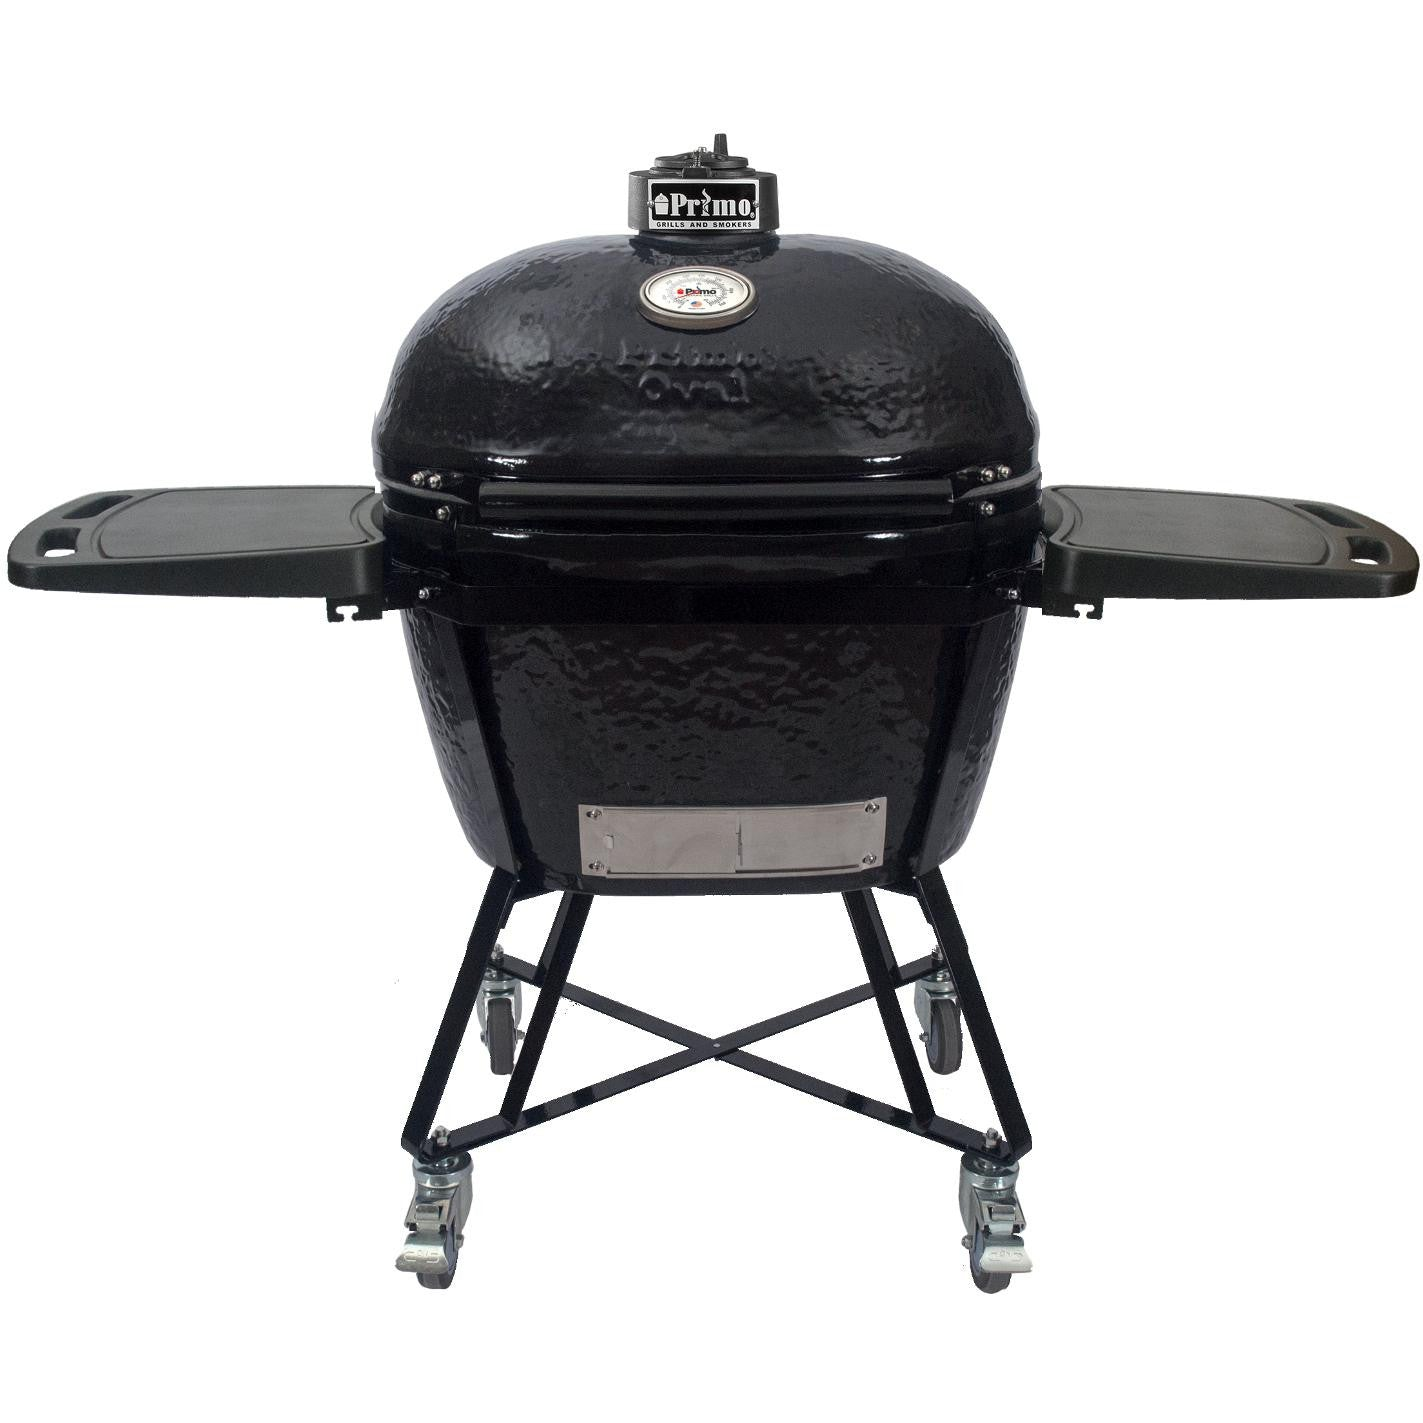 Primo Ceramic Charcoal All-in-One Kamado Grill - Oval LG 300 - Primo ... - Primo Ceramic Charcoal All-in-One Kamado Grill - Oval LG 300